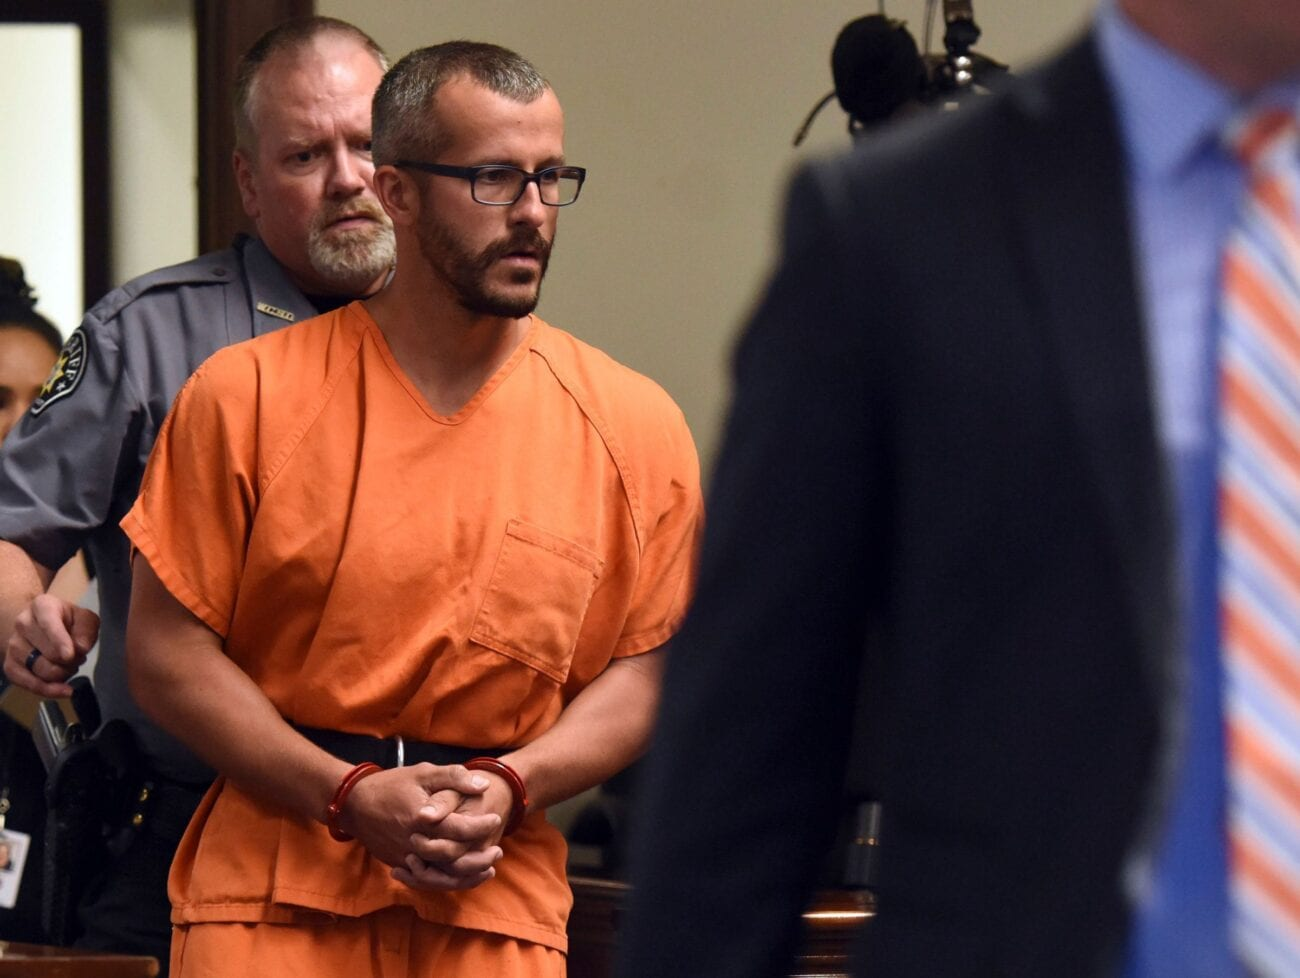 Chris Watts has had a number of documentaries made about him. Here are the revelations coming from the Netflix documentary.